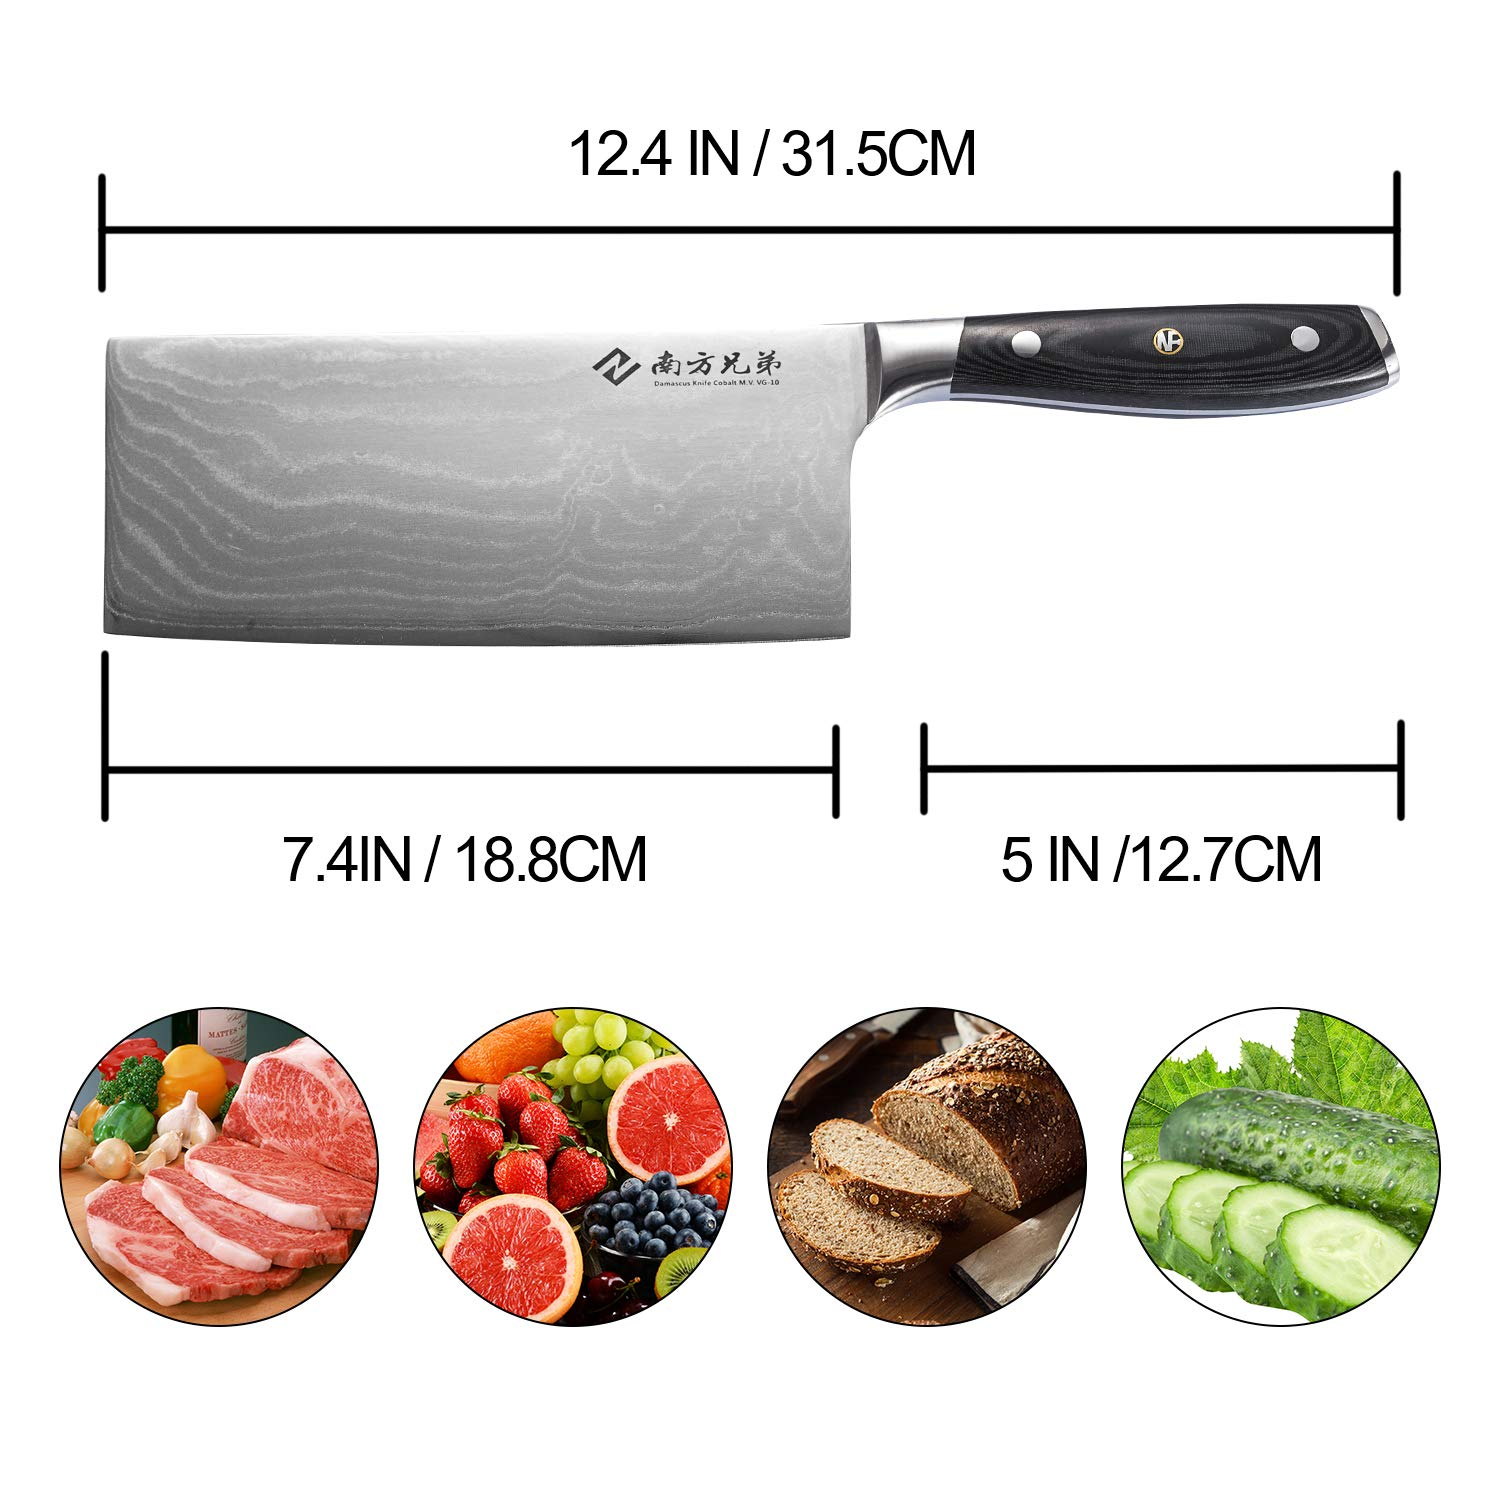 """Damascus Cleaver Knife, 7.2"""" Stainless Steel Chinese Chef Knives Vegetable Knife with Wooden Handle, Multipurpose Use for Kitchen or Restaurant by Nanfang Brothers (Image #3)"""